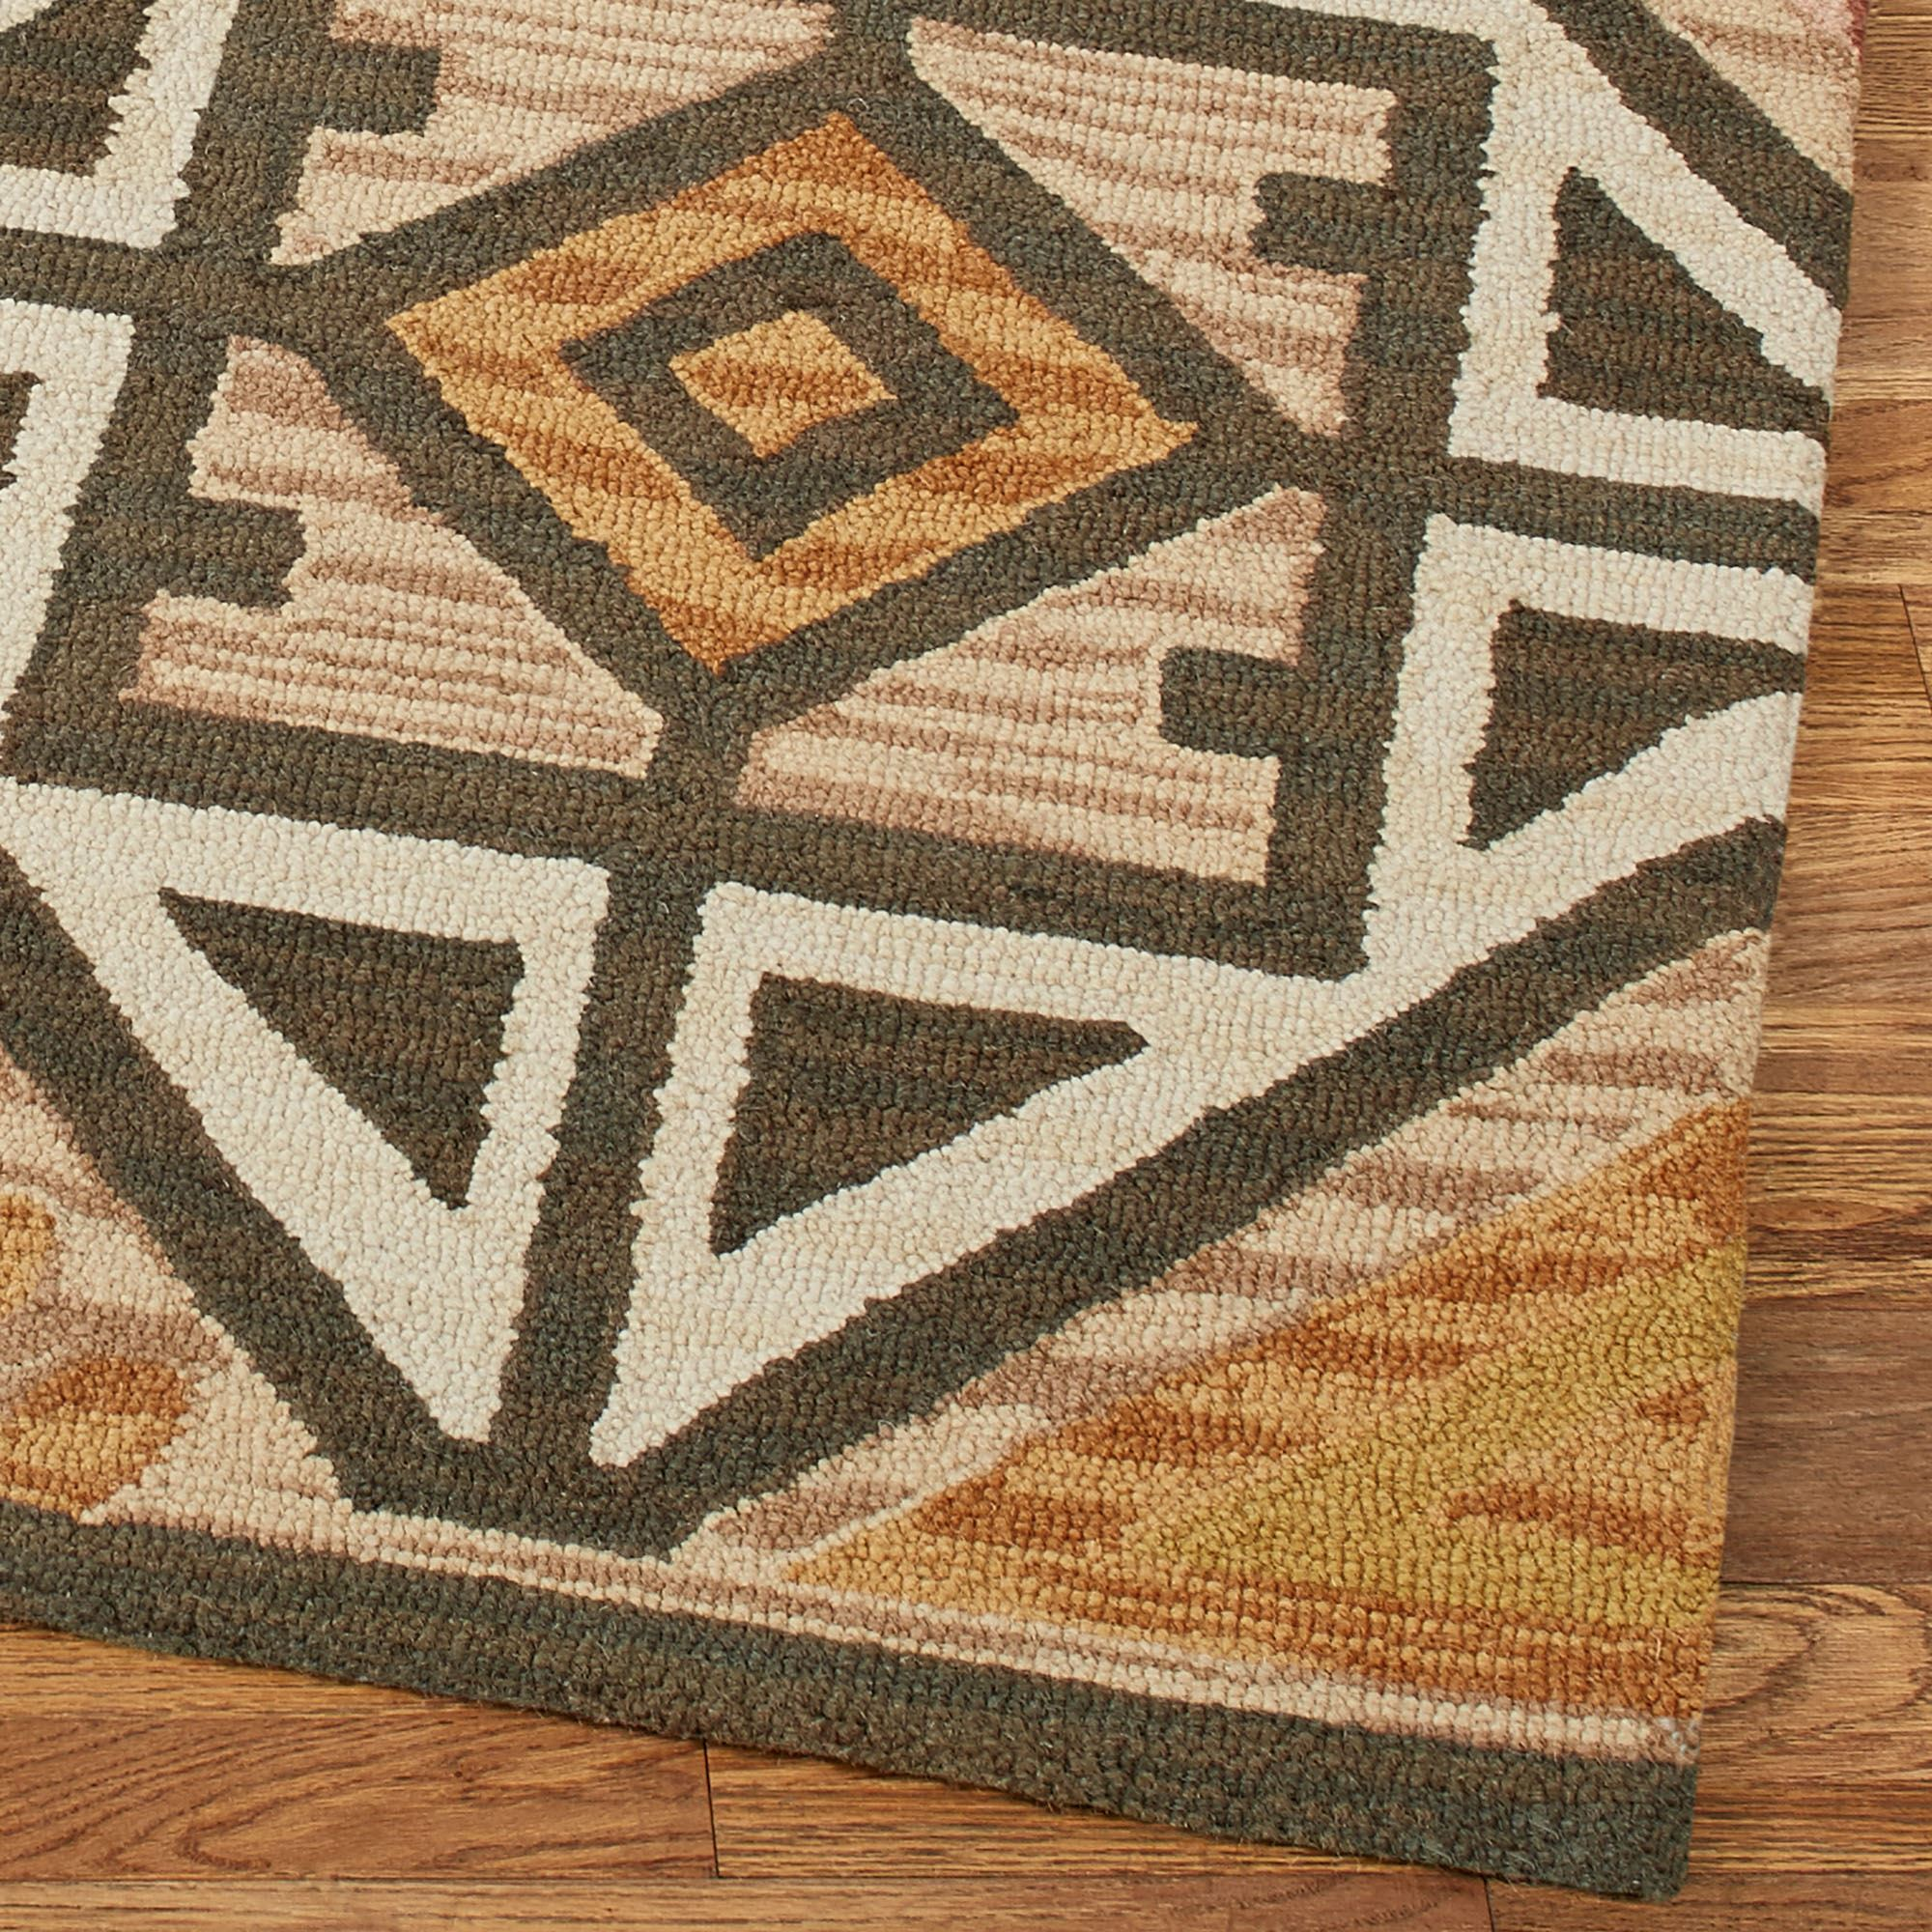 Southwest Rugs Whiskey River Turquoise Rug Collection: Southwest Area Rug